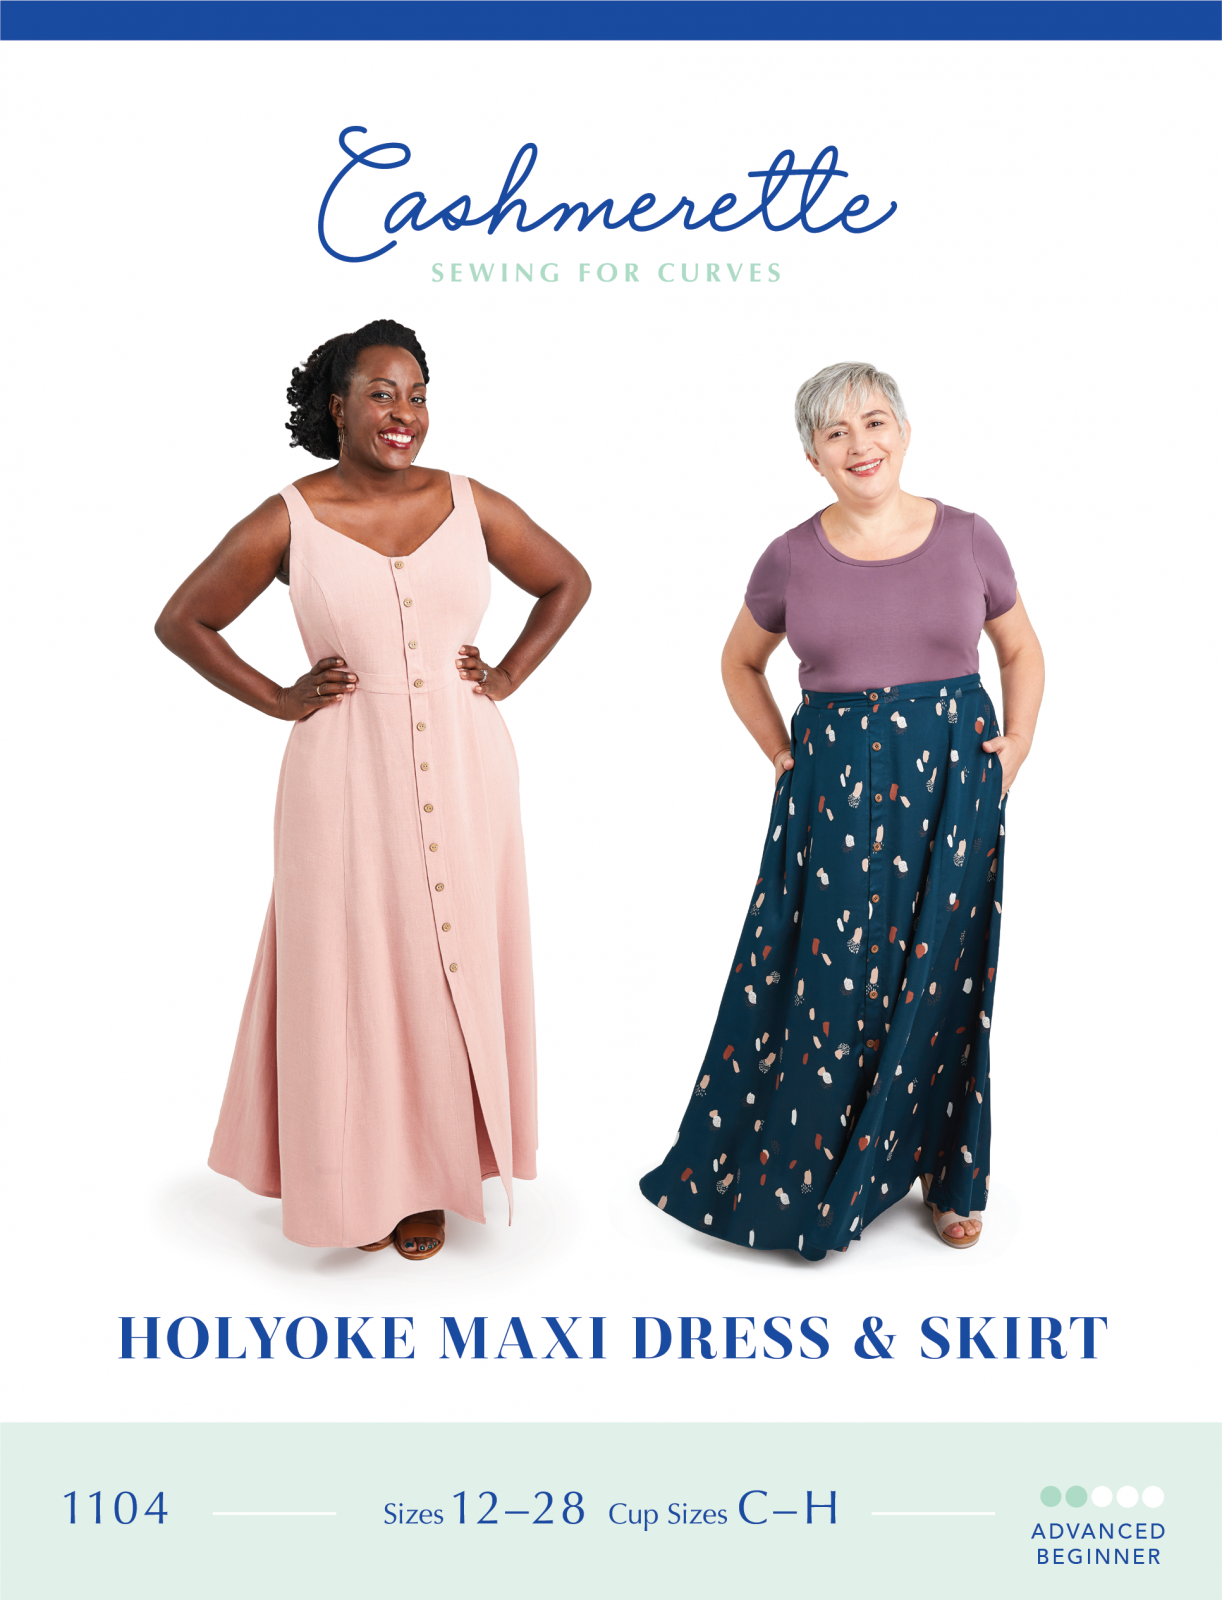 Holyoke Dress & Skirt - Cashmerette